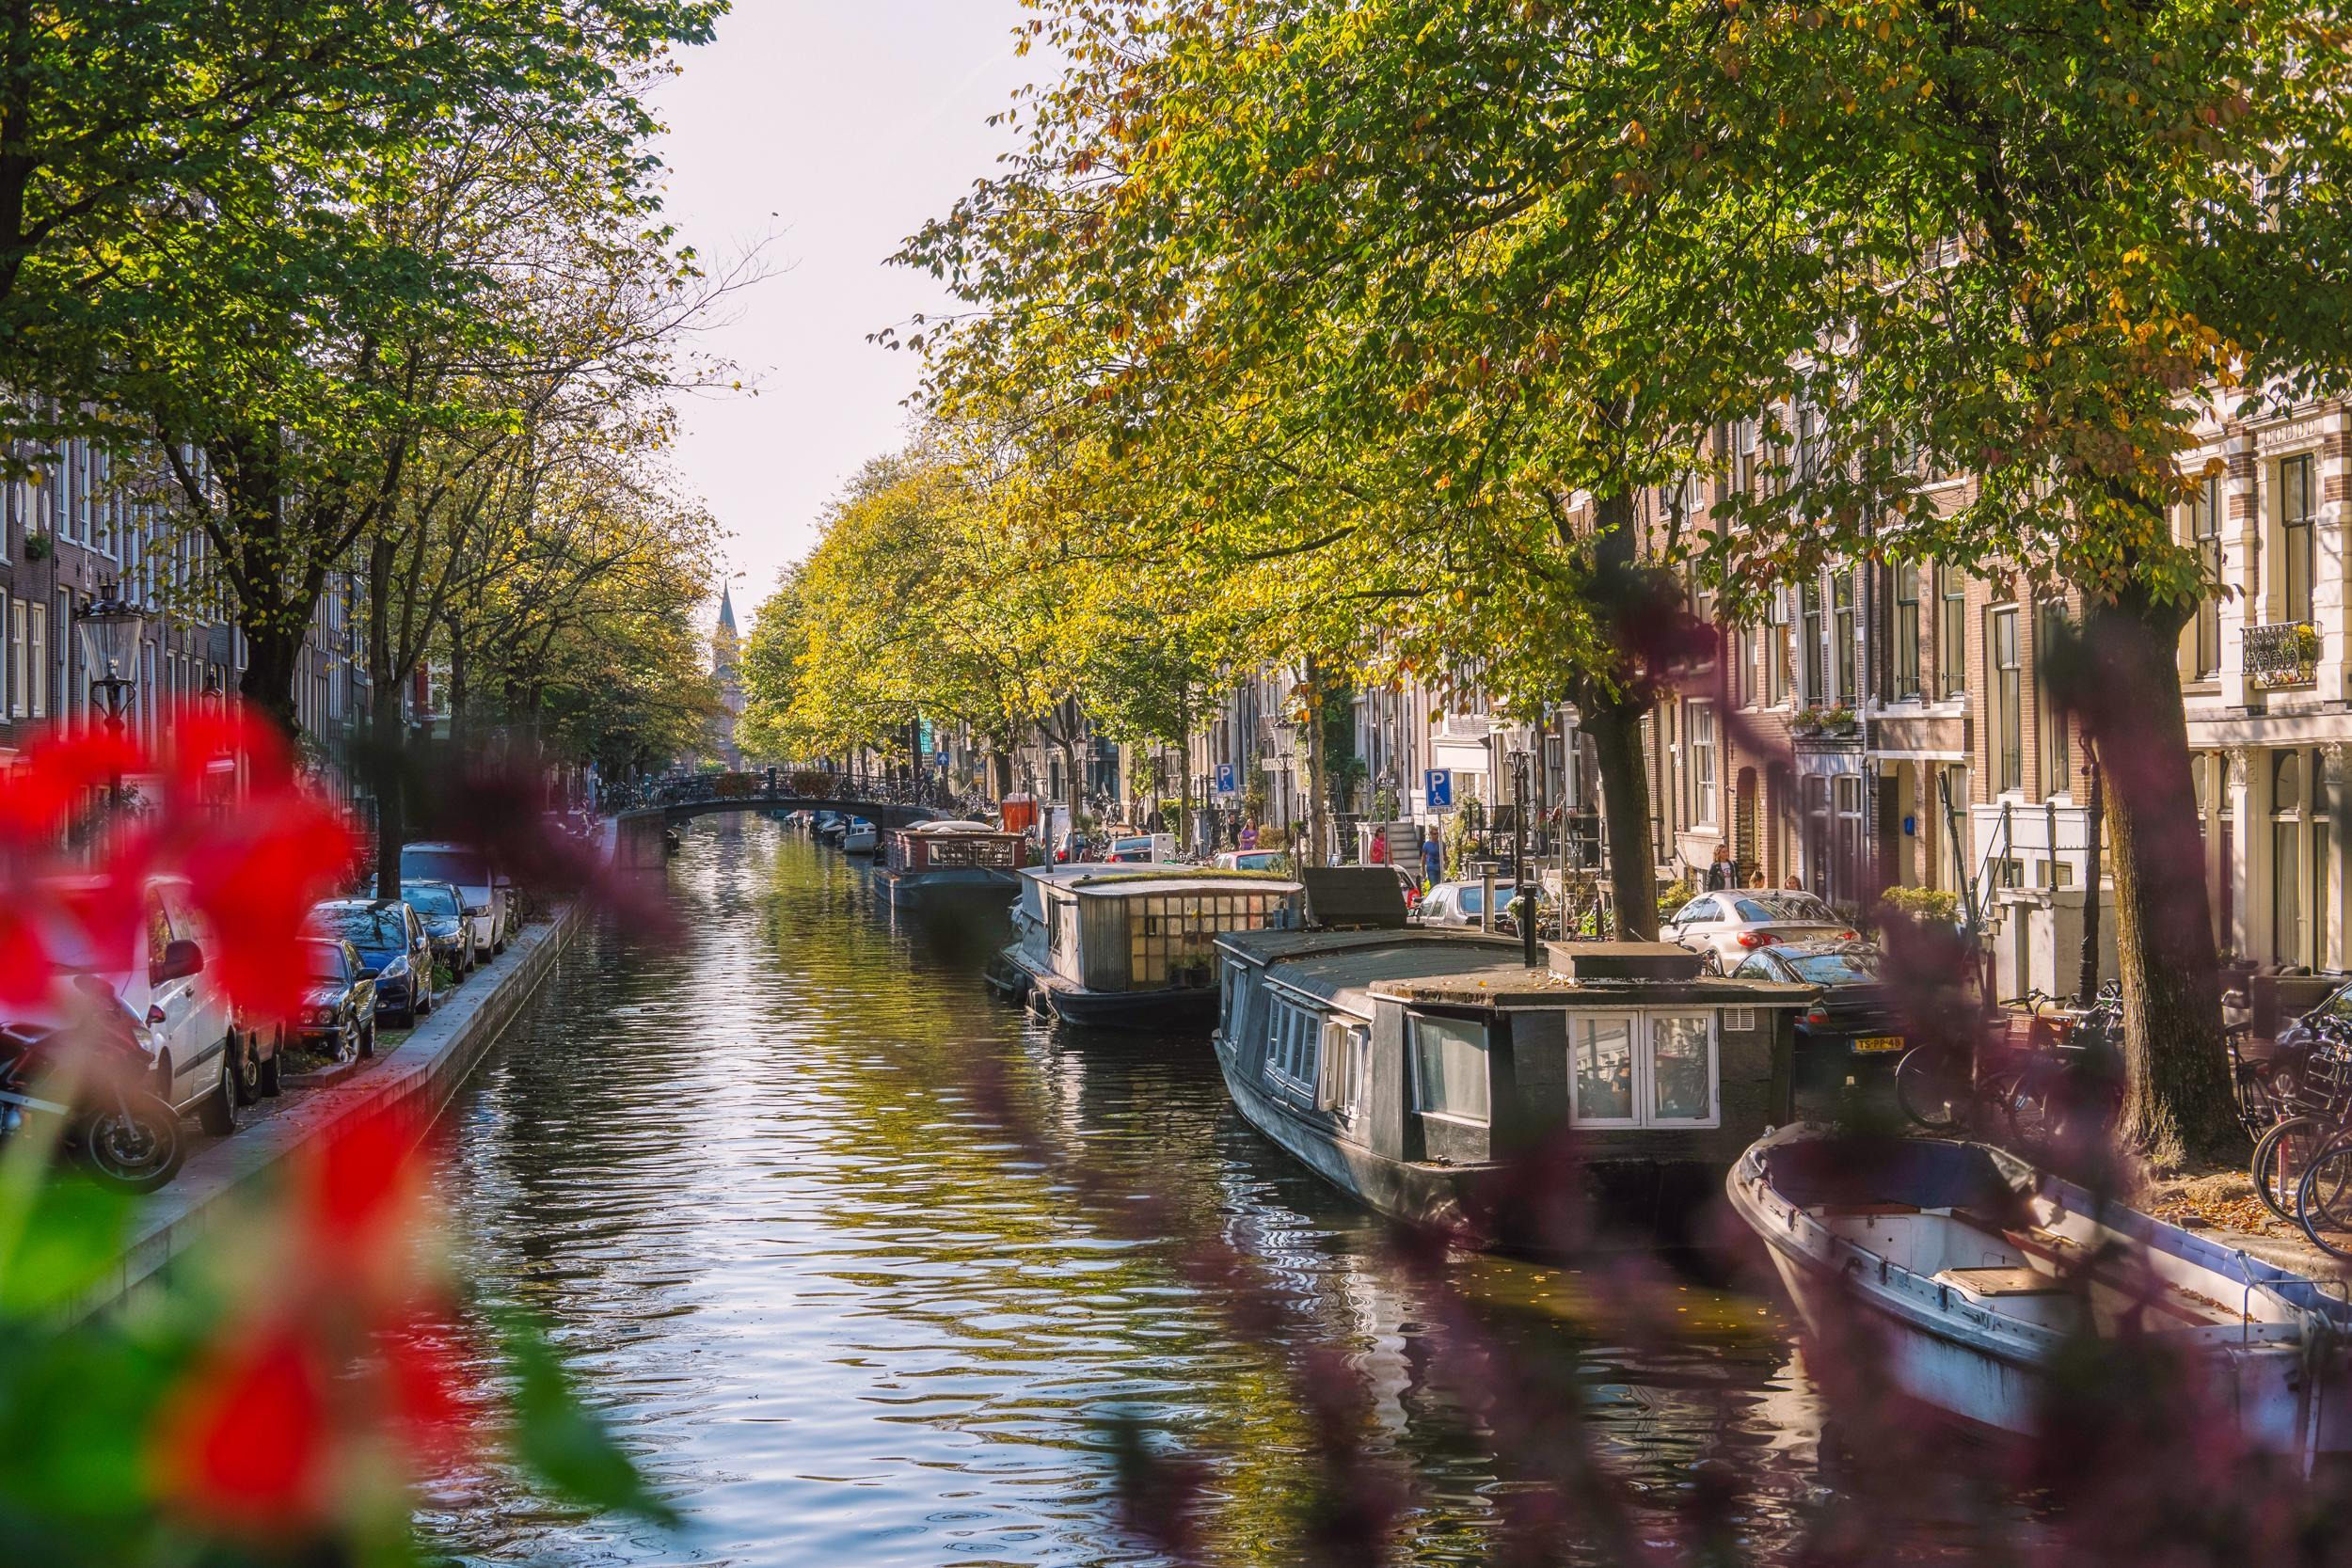 Where to Find the Best Views in Amsterdam